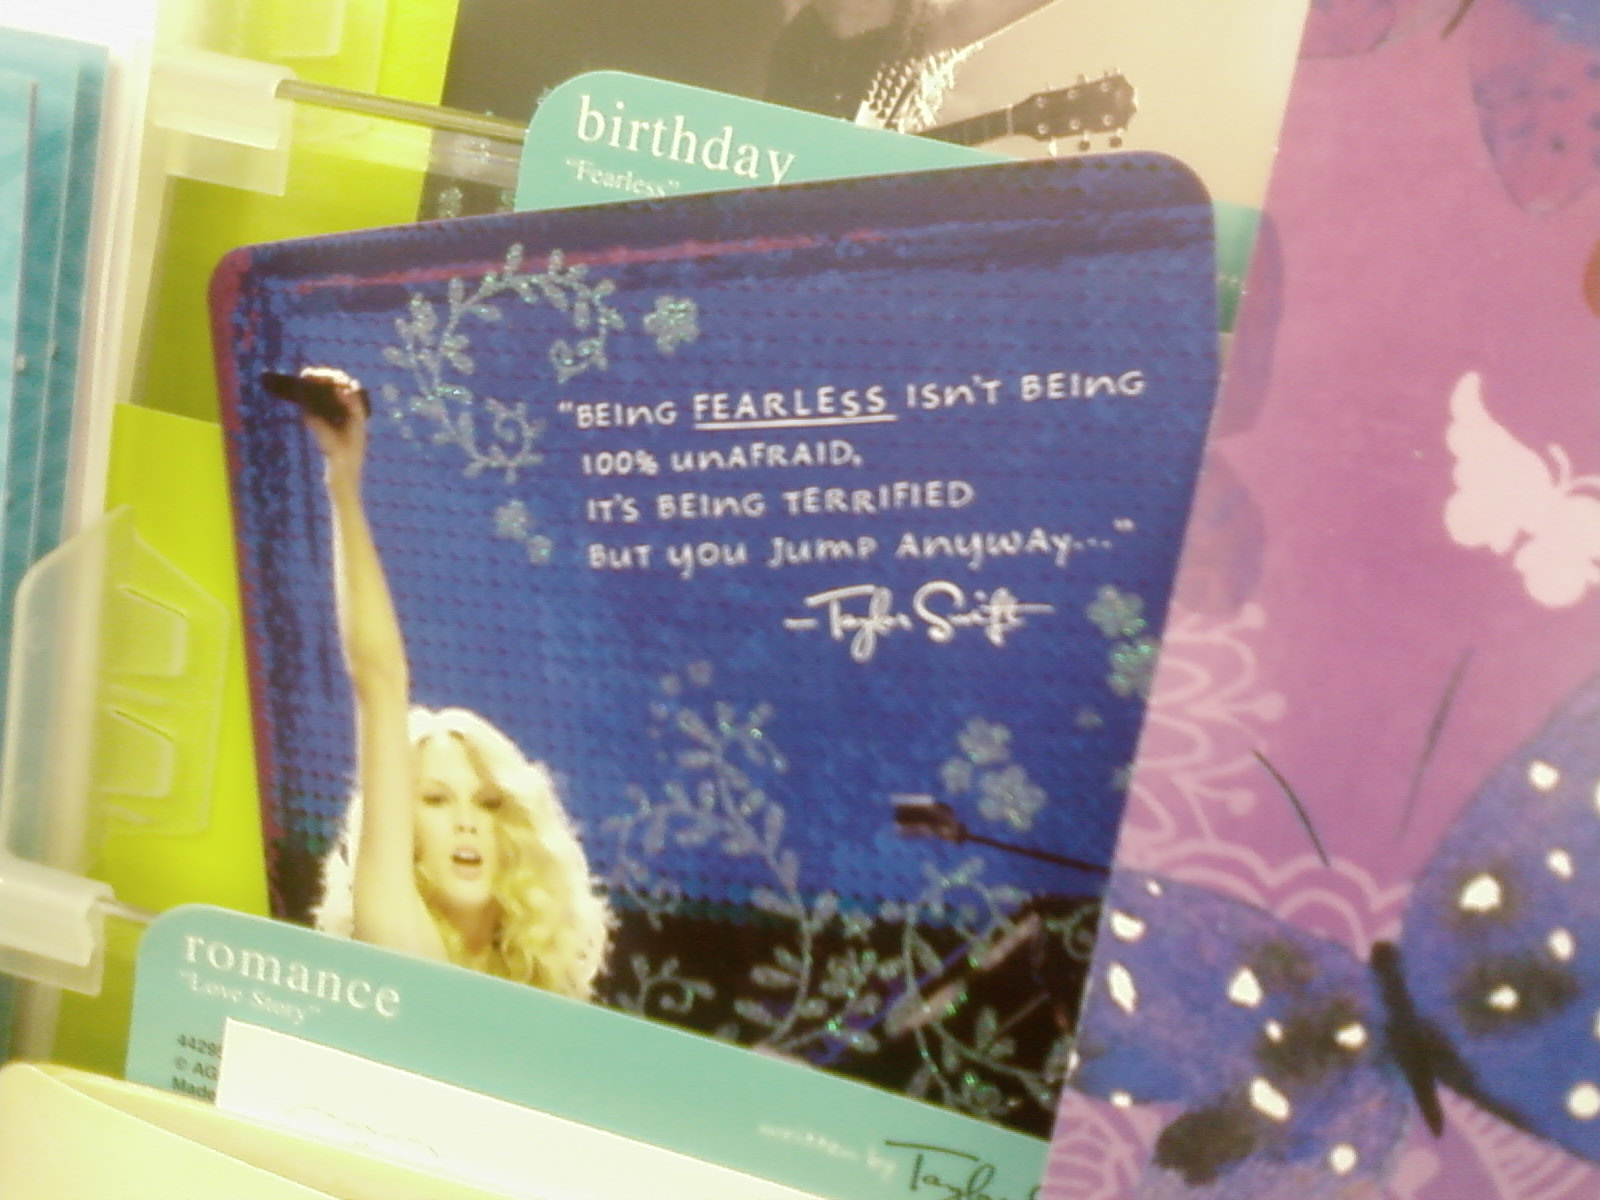 Bumblr Taylor Swift Her Stupid Birthday Card Stupid People